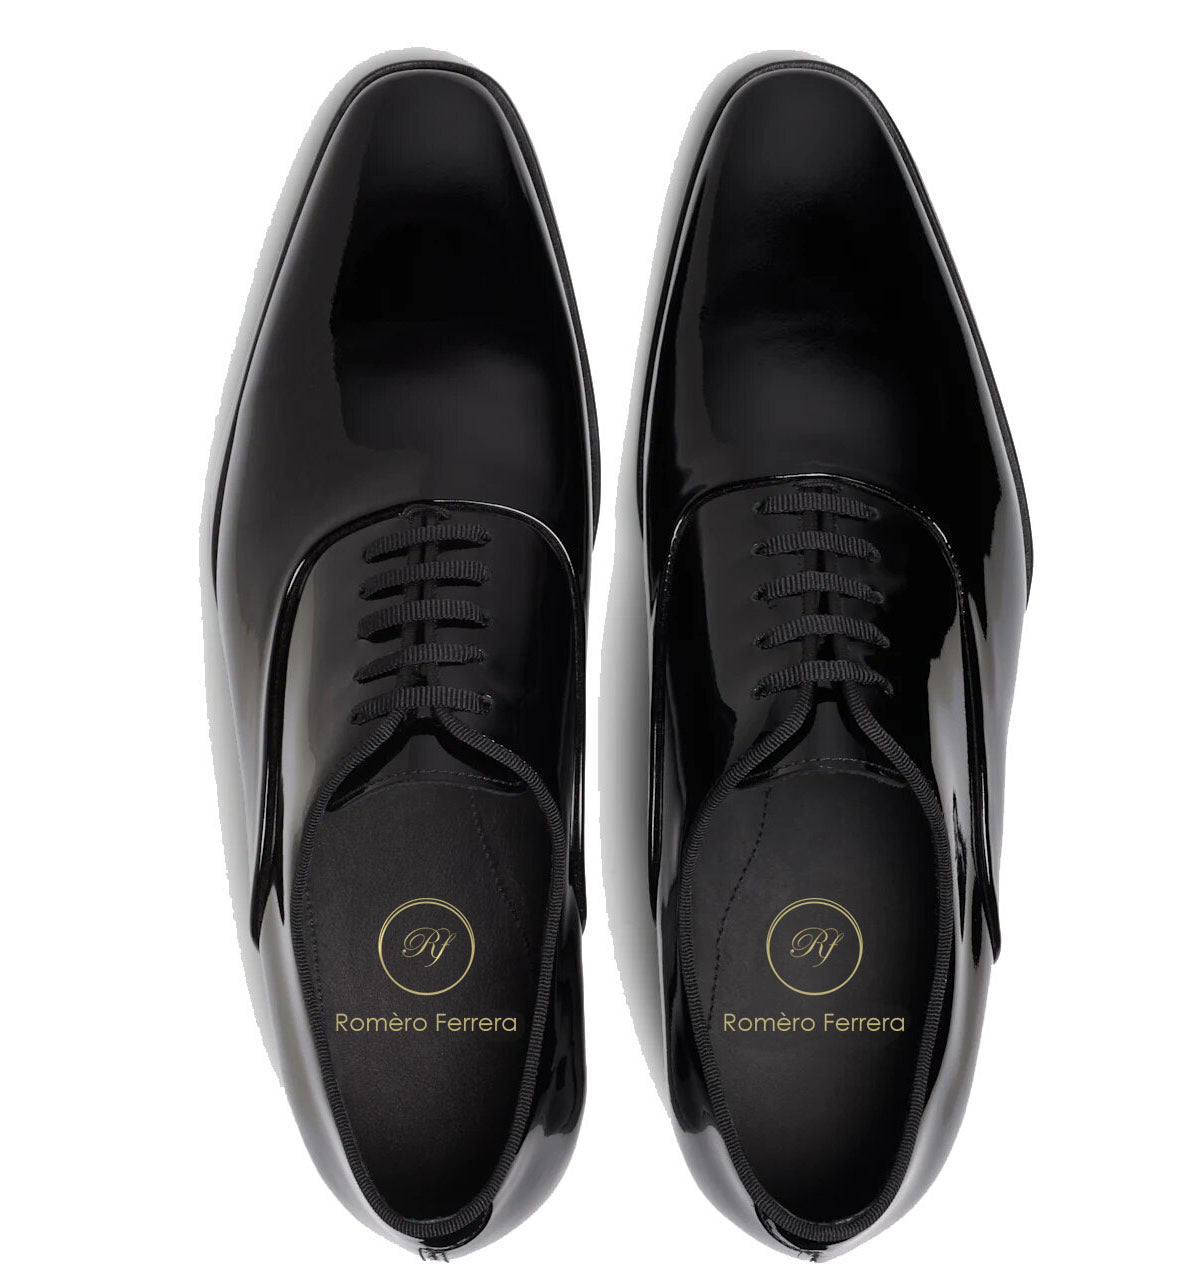 Thomas Goodyear Welted Black Patent Leather Oxford